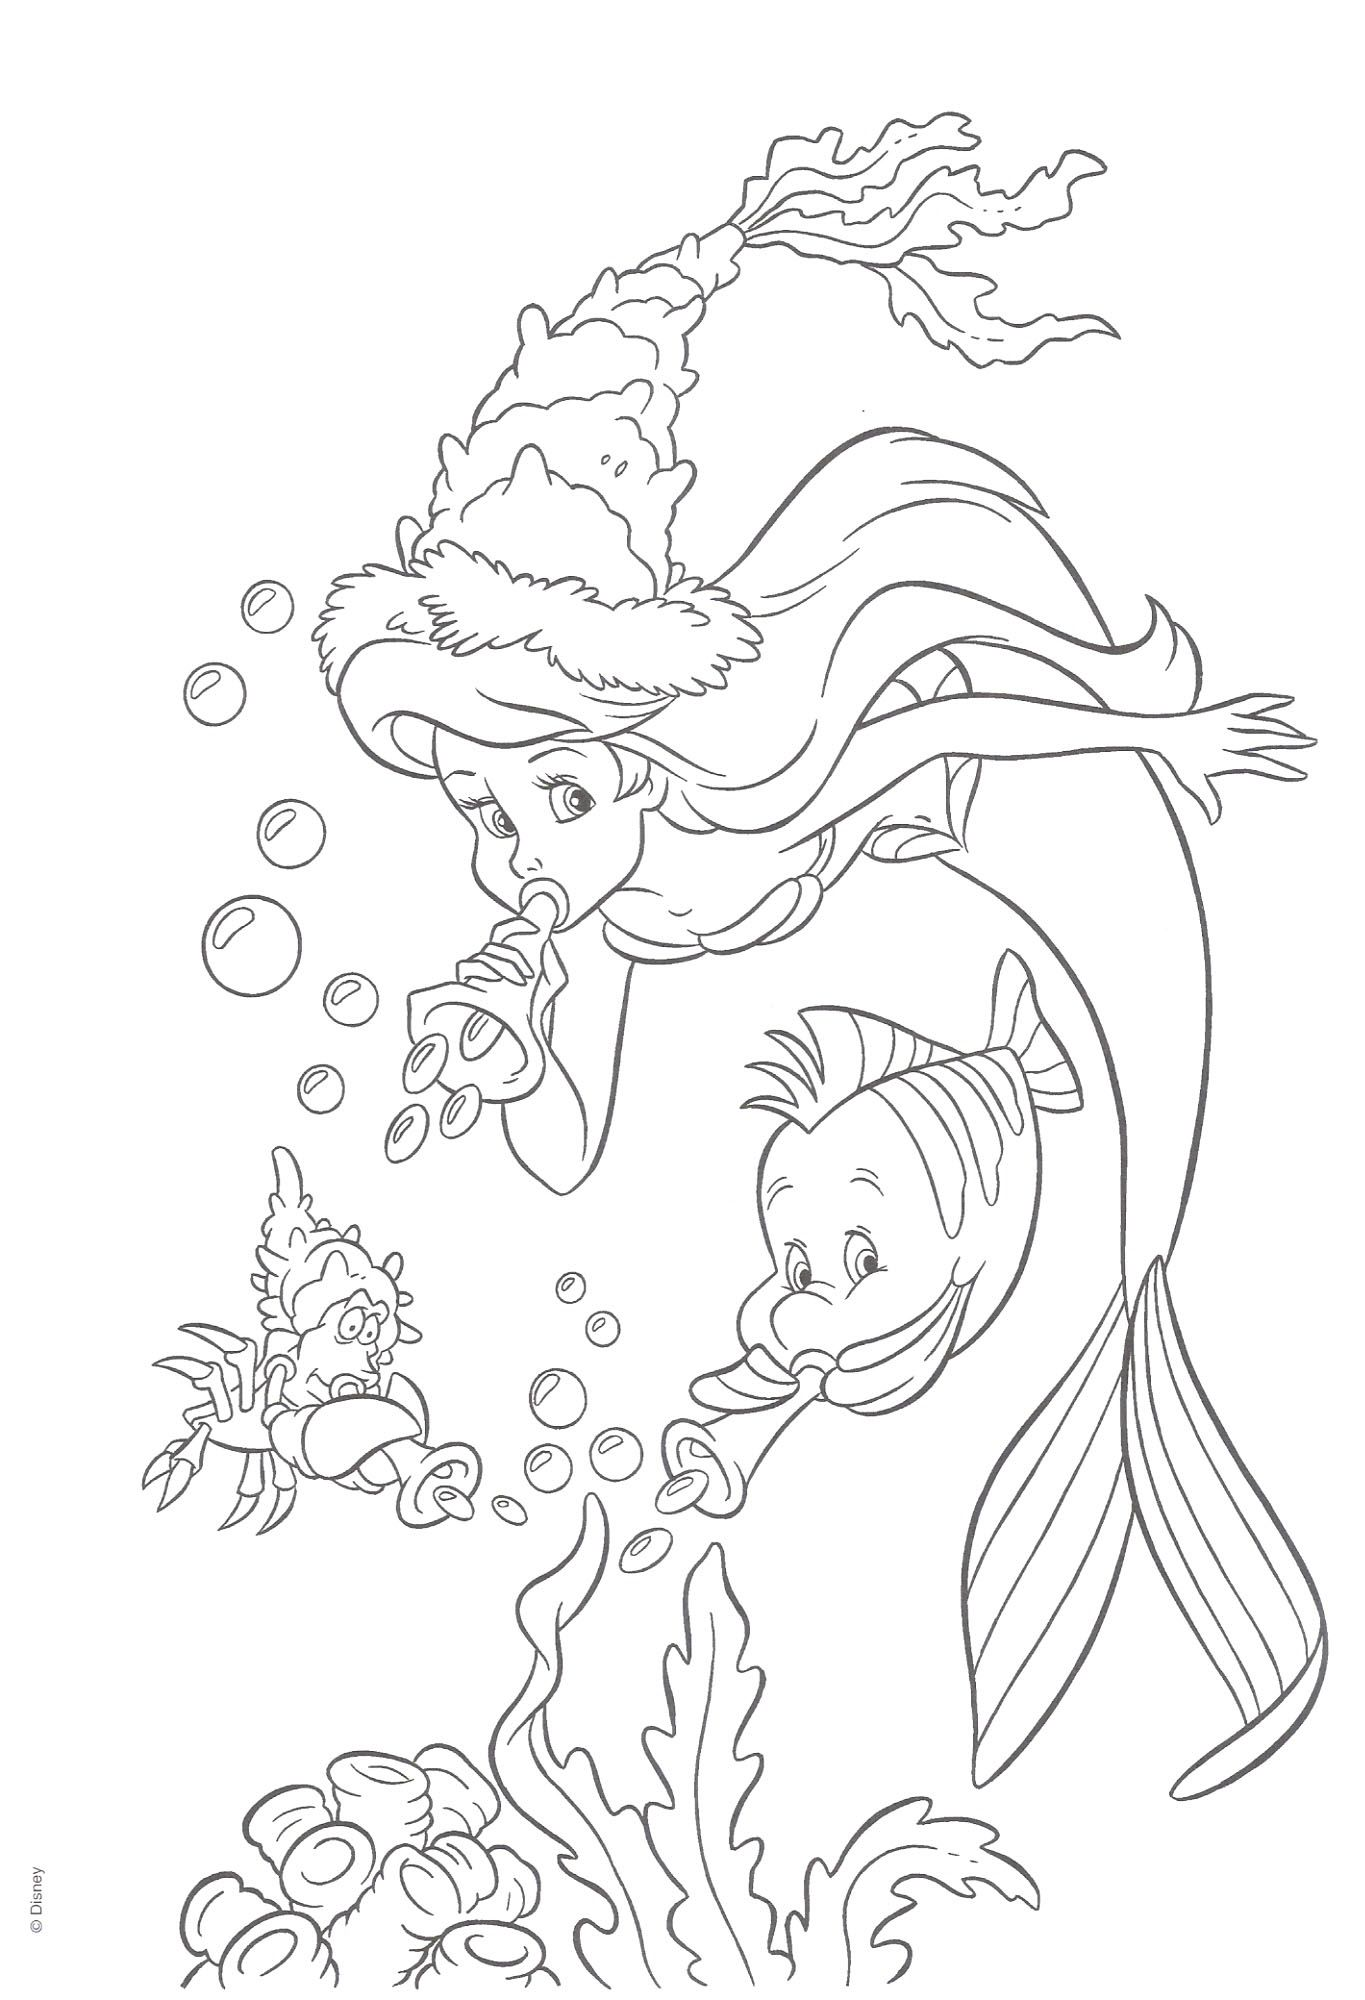 mermaid coloring pages birthday party | Mermaid Party | Pinterest ...